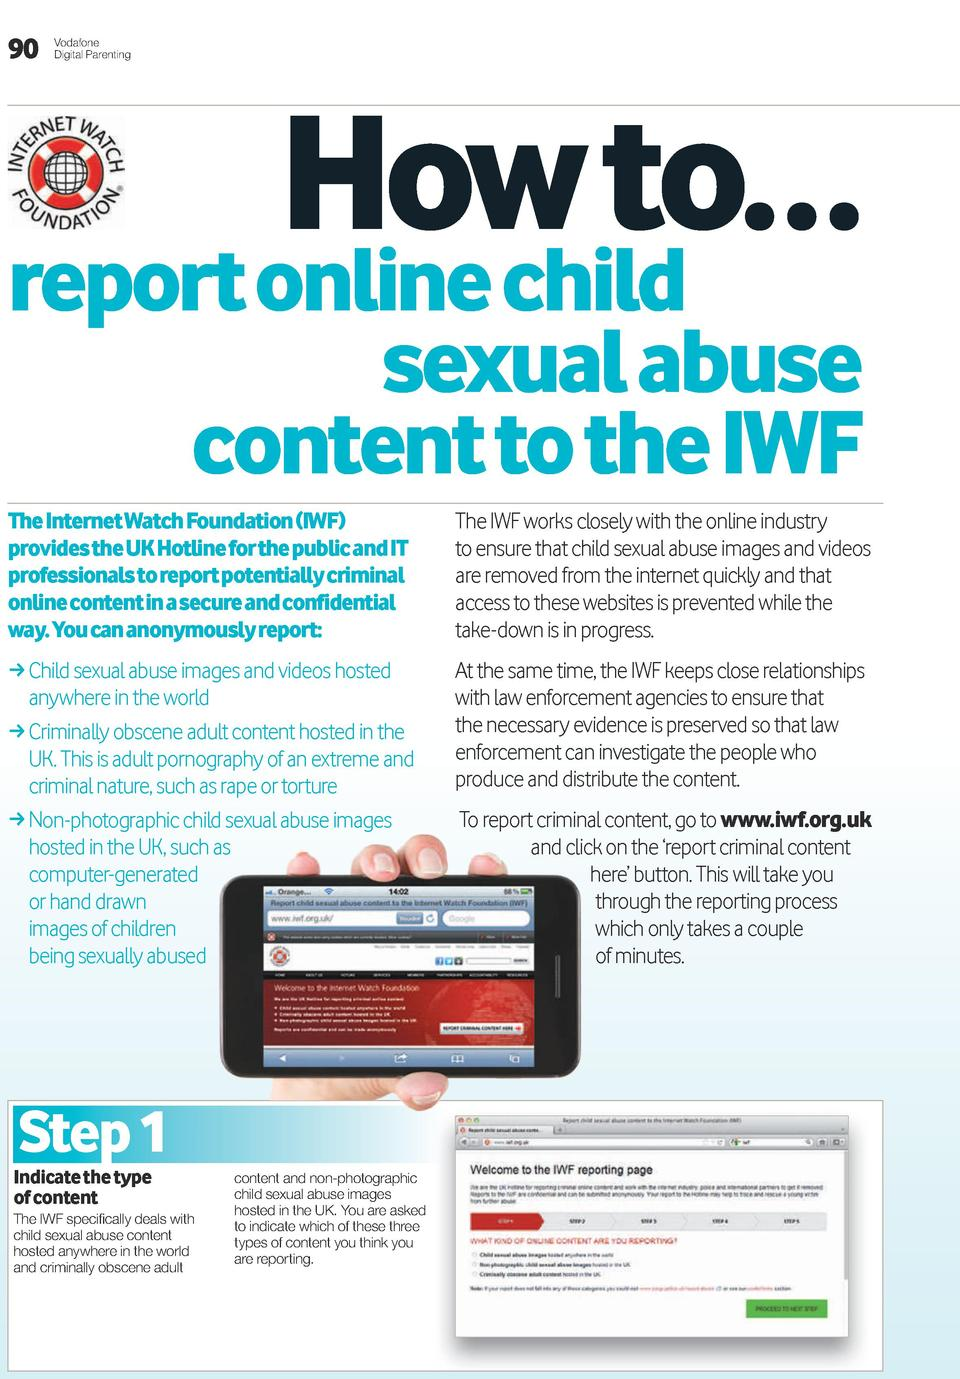 90  Vodafone Digital Parenting  How to    report online child  sexual abuse content to the iwF  the internet watch Foundat...